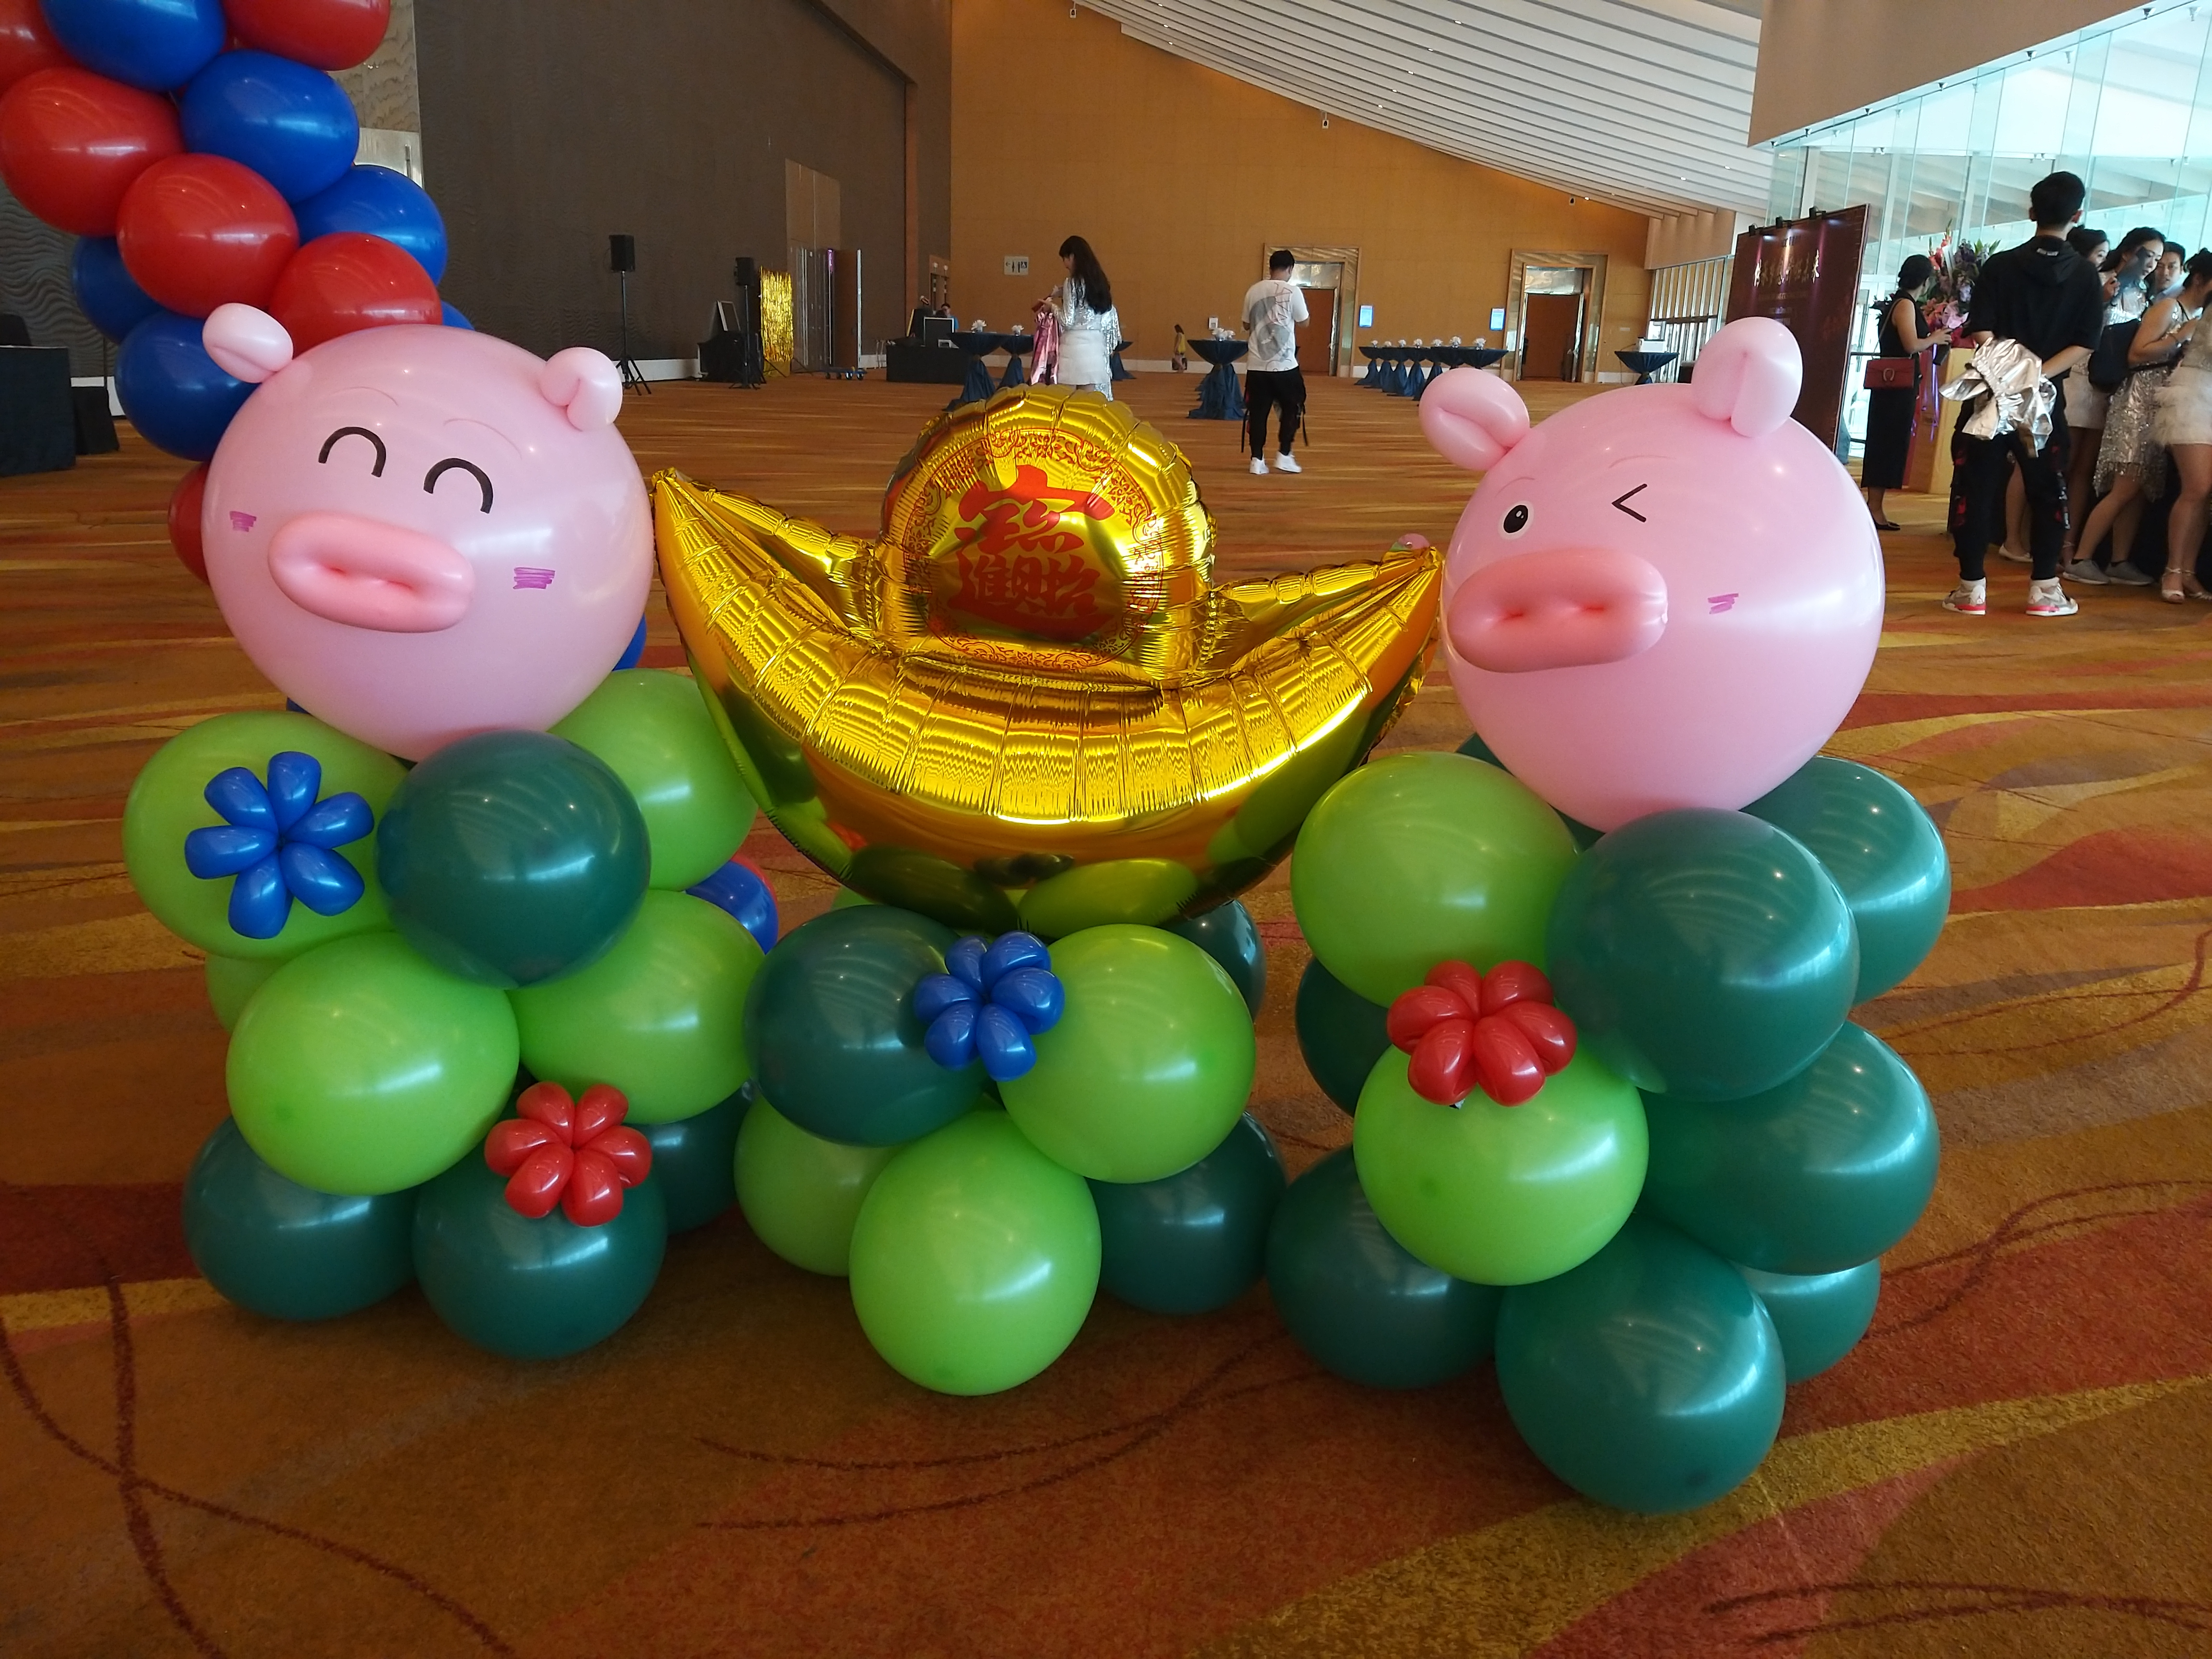 , Star Balloon Arch with pigs for Chinese New Year Balloon Decorations, Singapore Balloon Decoration Services - Balloon Workshop and Balloon Sculpting